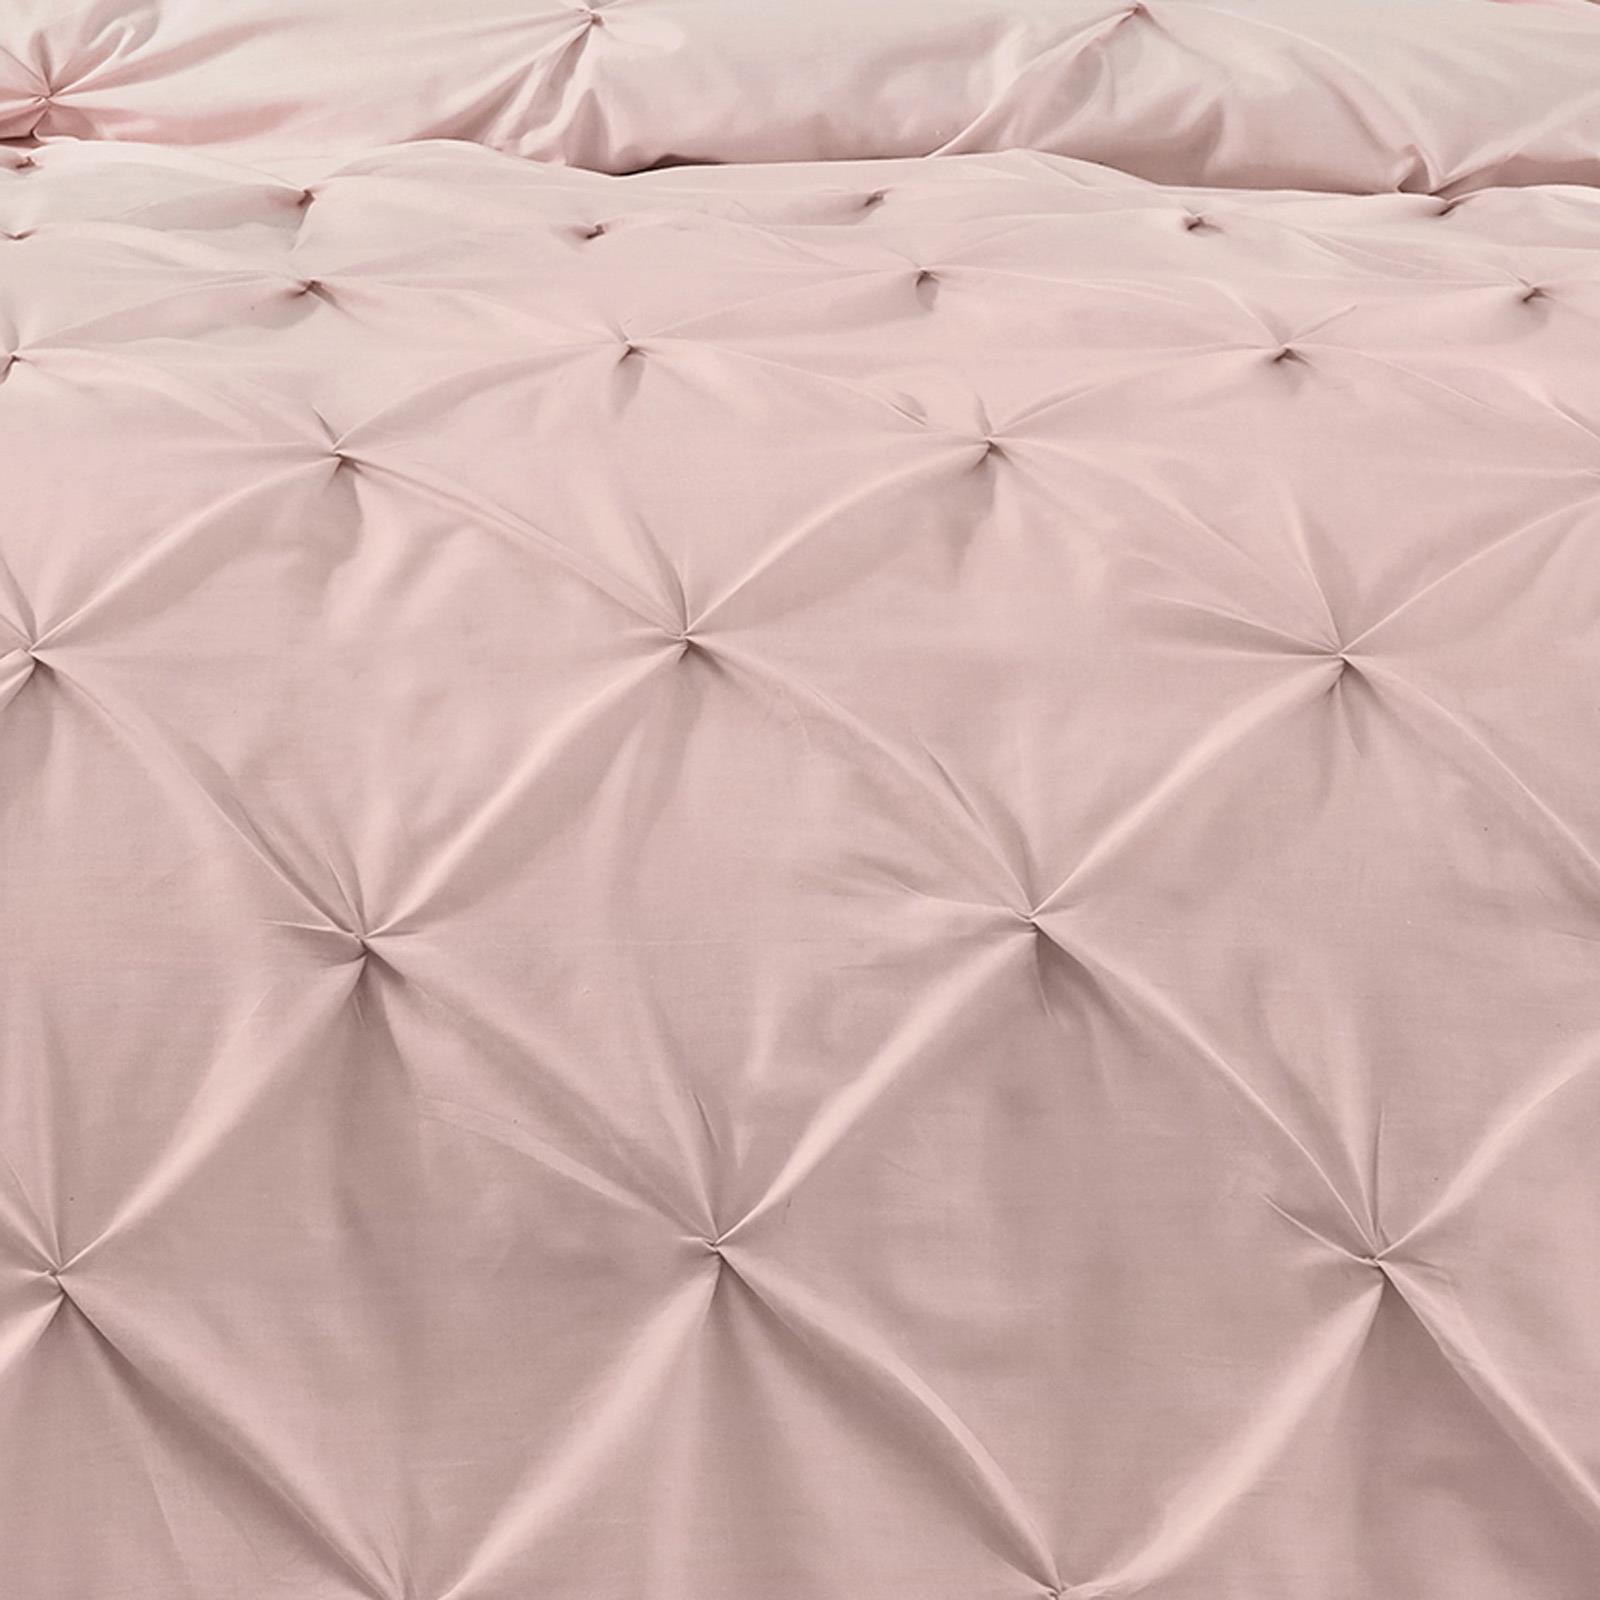 Blush-Duvet-Covers-Ruched-Pin-Tuck-Stitched-Plain-Pink-Quilt-Cover-Bedding-Sets thumbnail 8